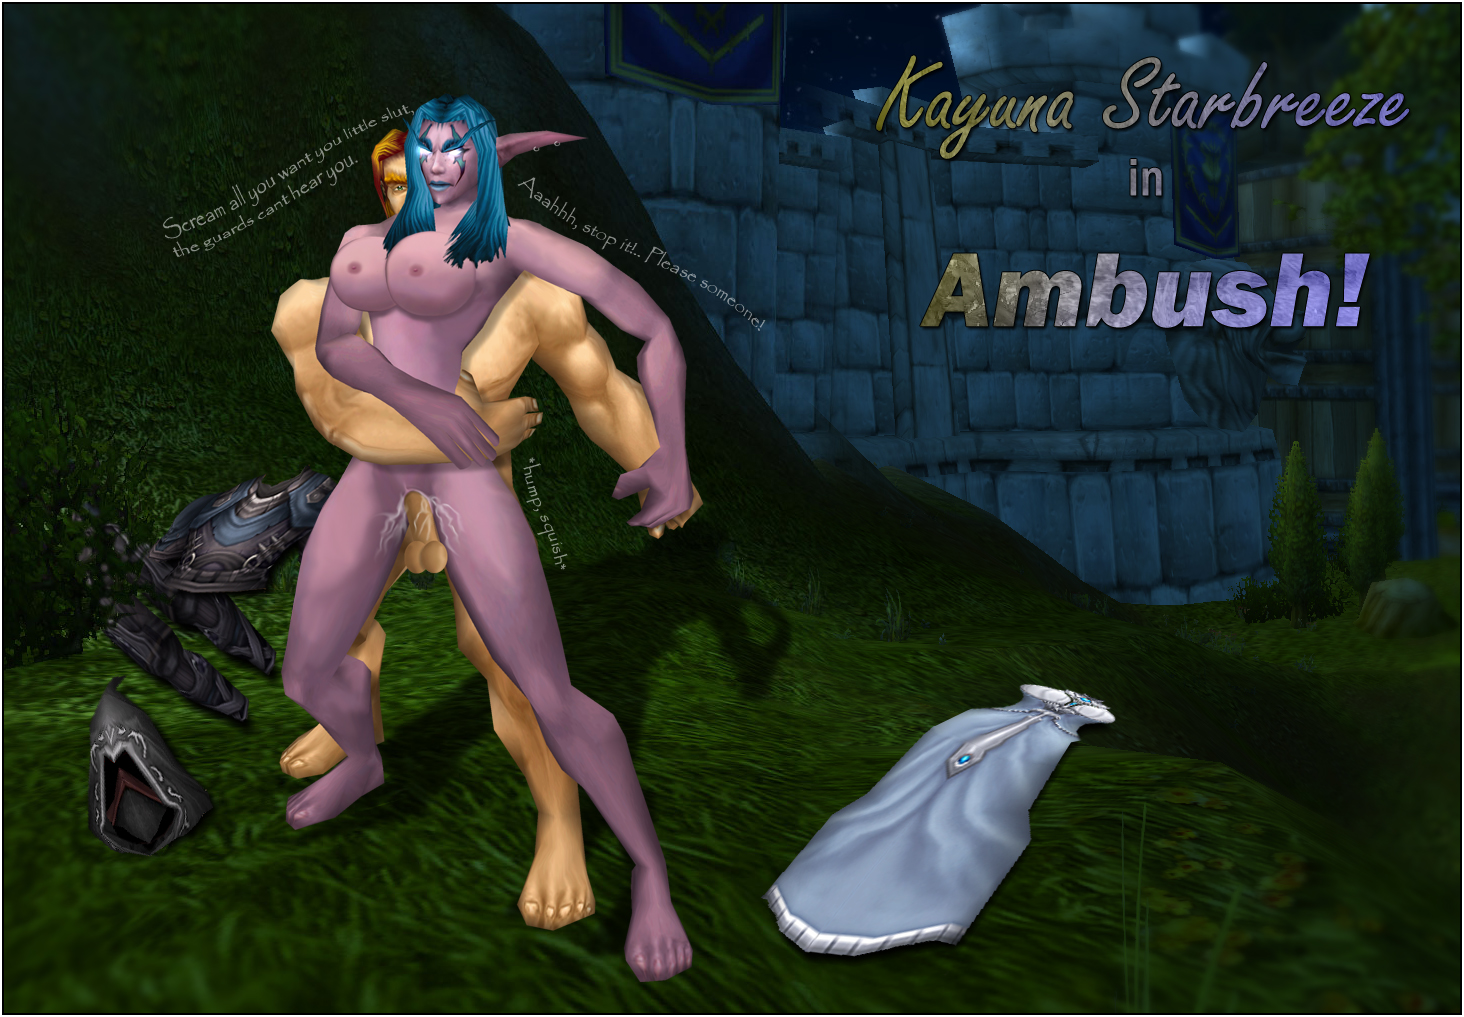 3d World of Warcraft porn addon exploited uncensored girls